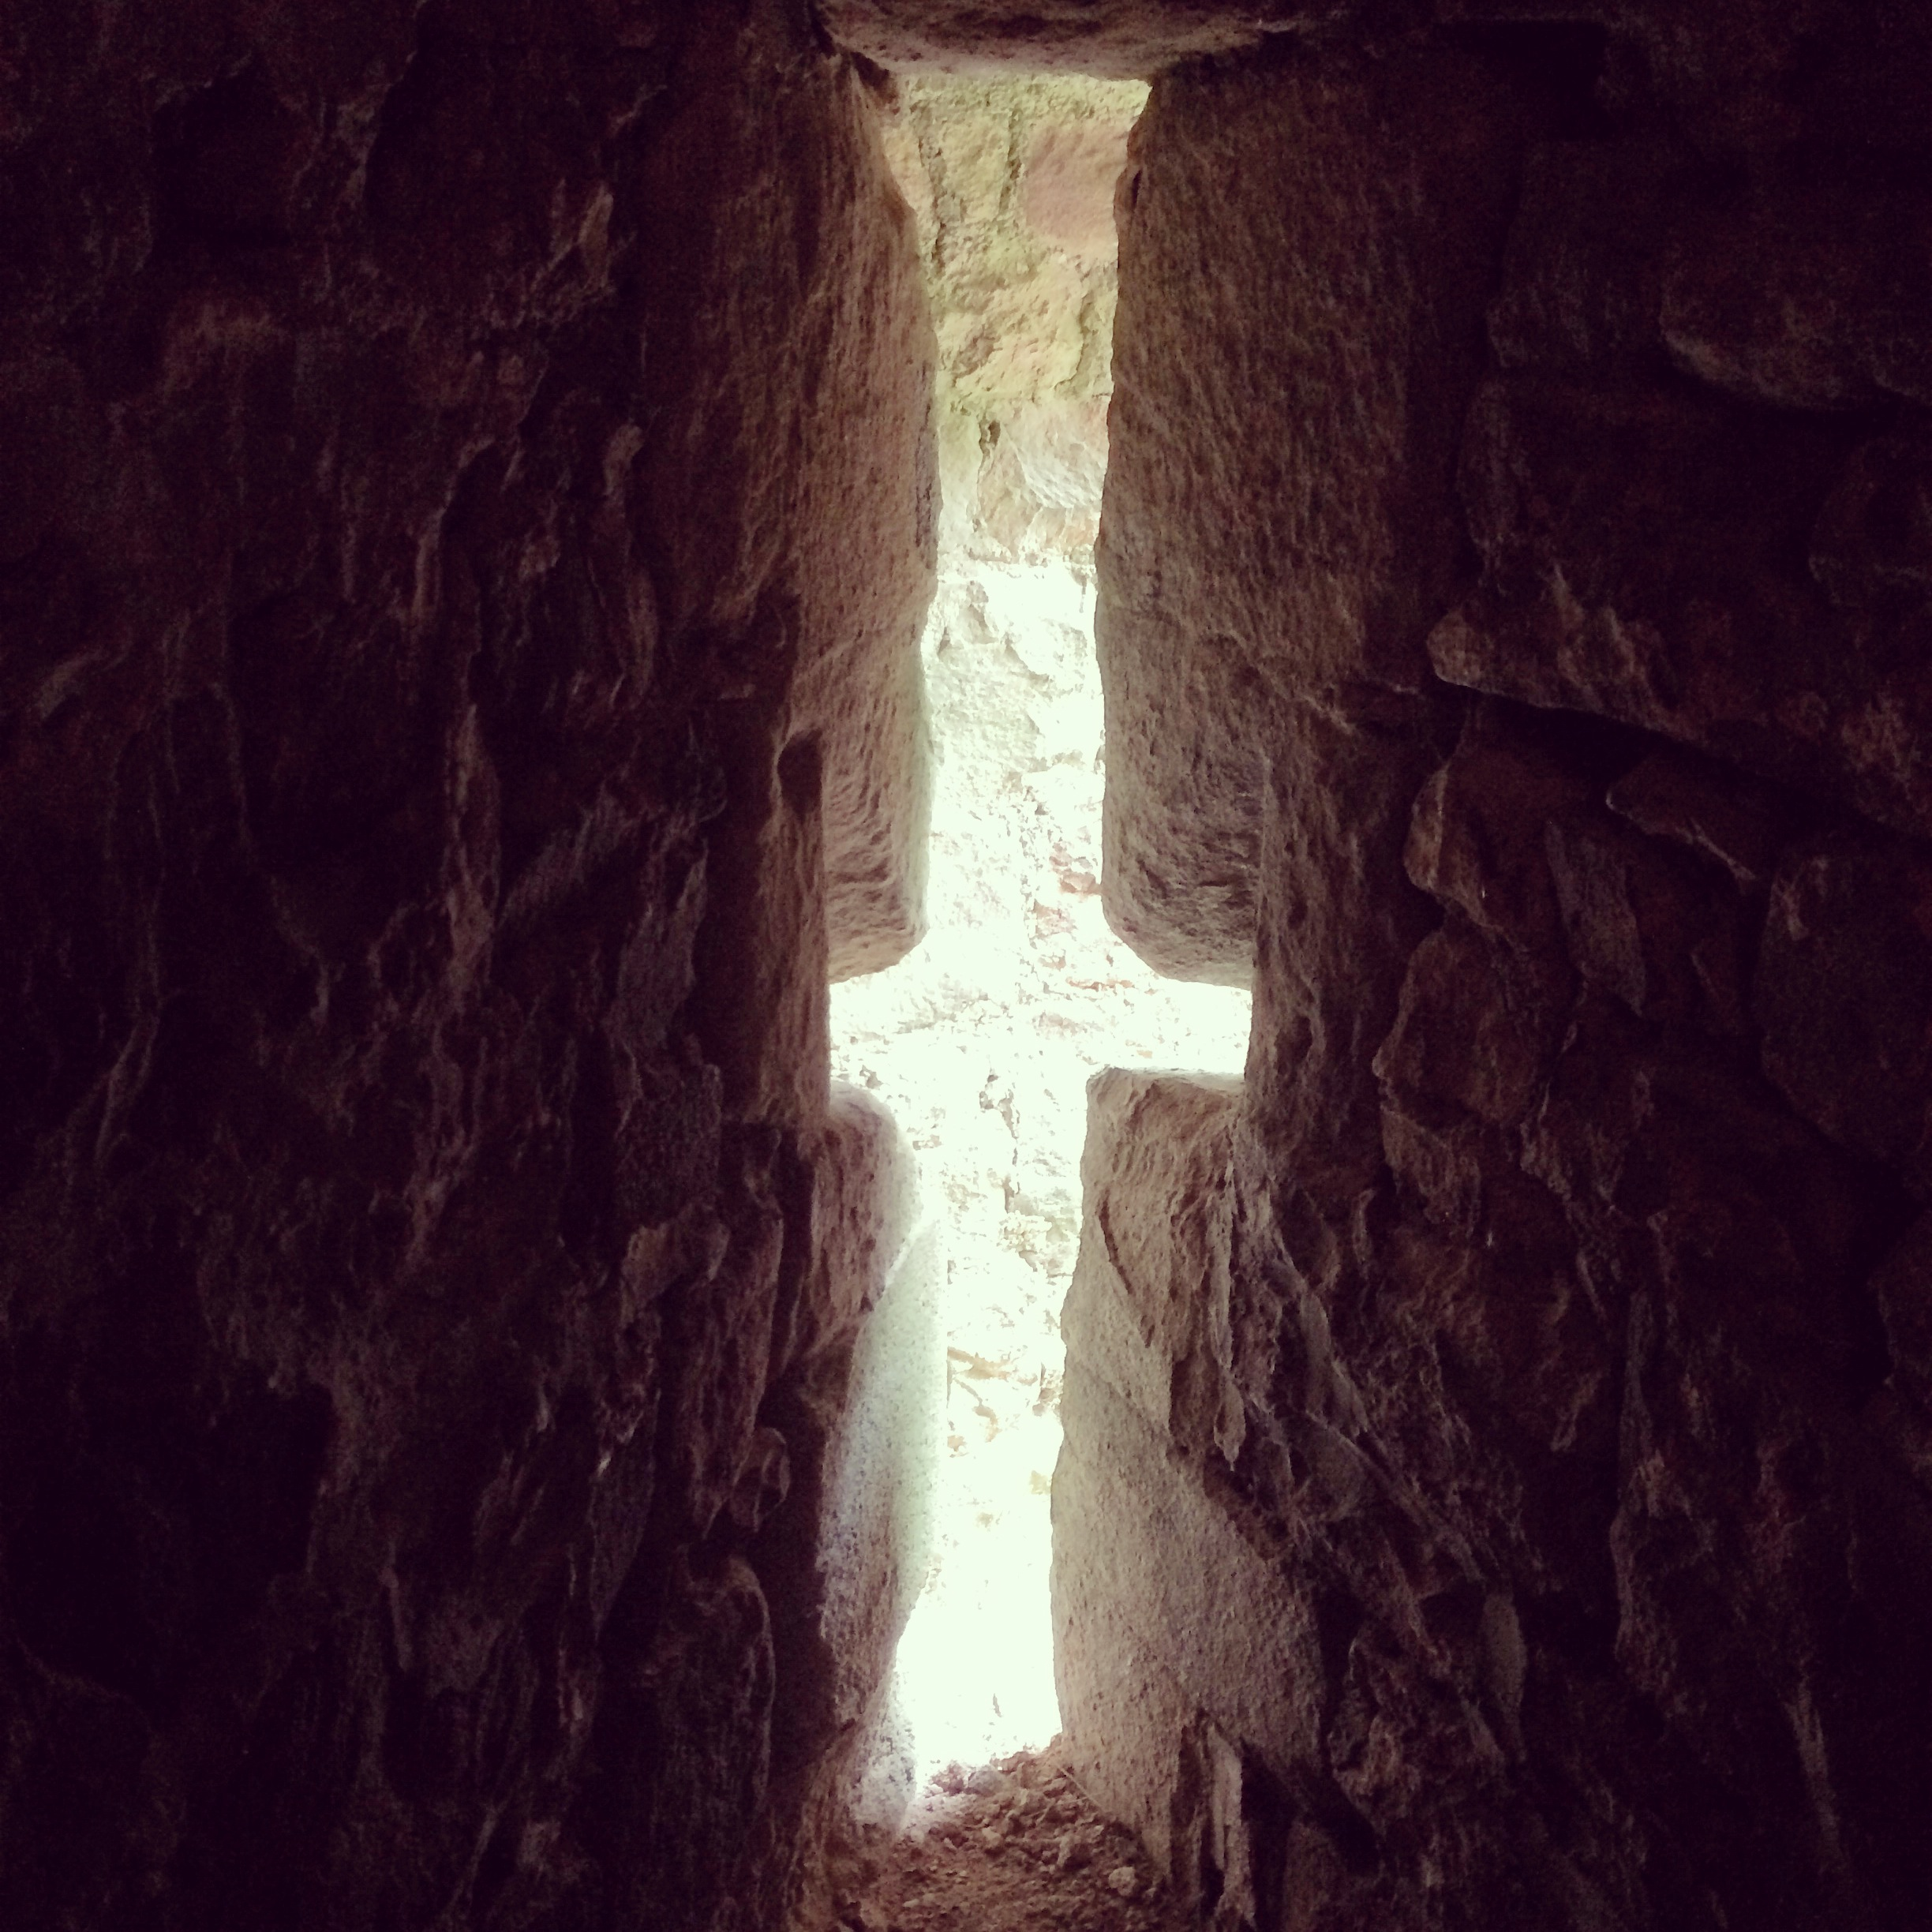 Going through photographs I've taken,and found one from a visit to Dunster Castle, Somerset, October 2014. Drawn to the shaft of light permeating through the window. #light #hope #cross